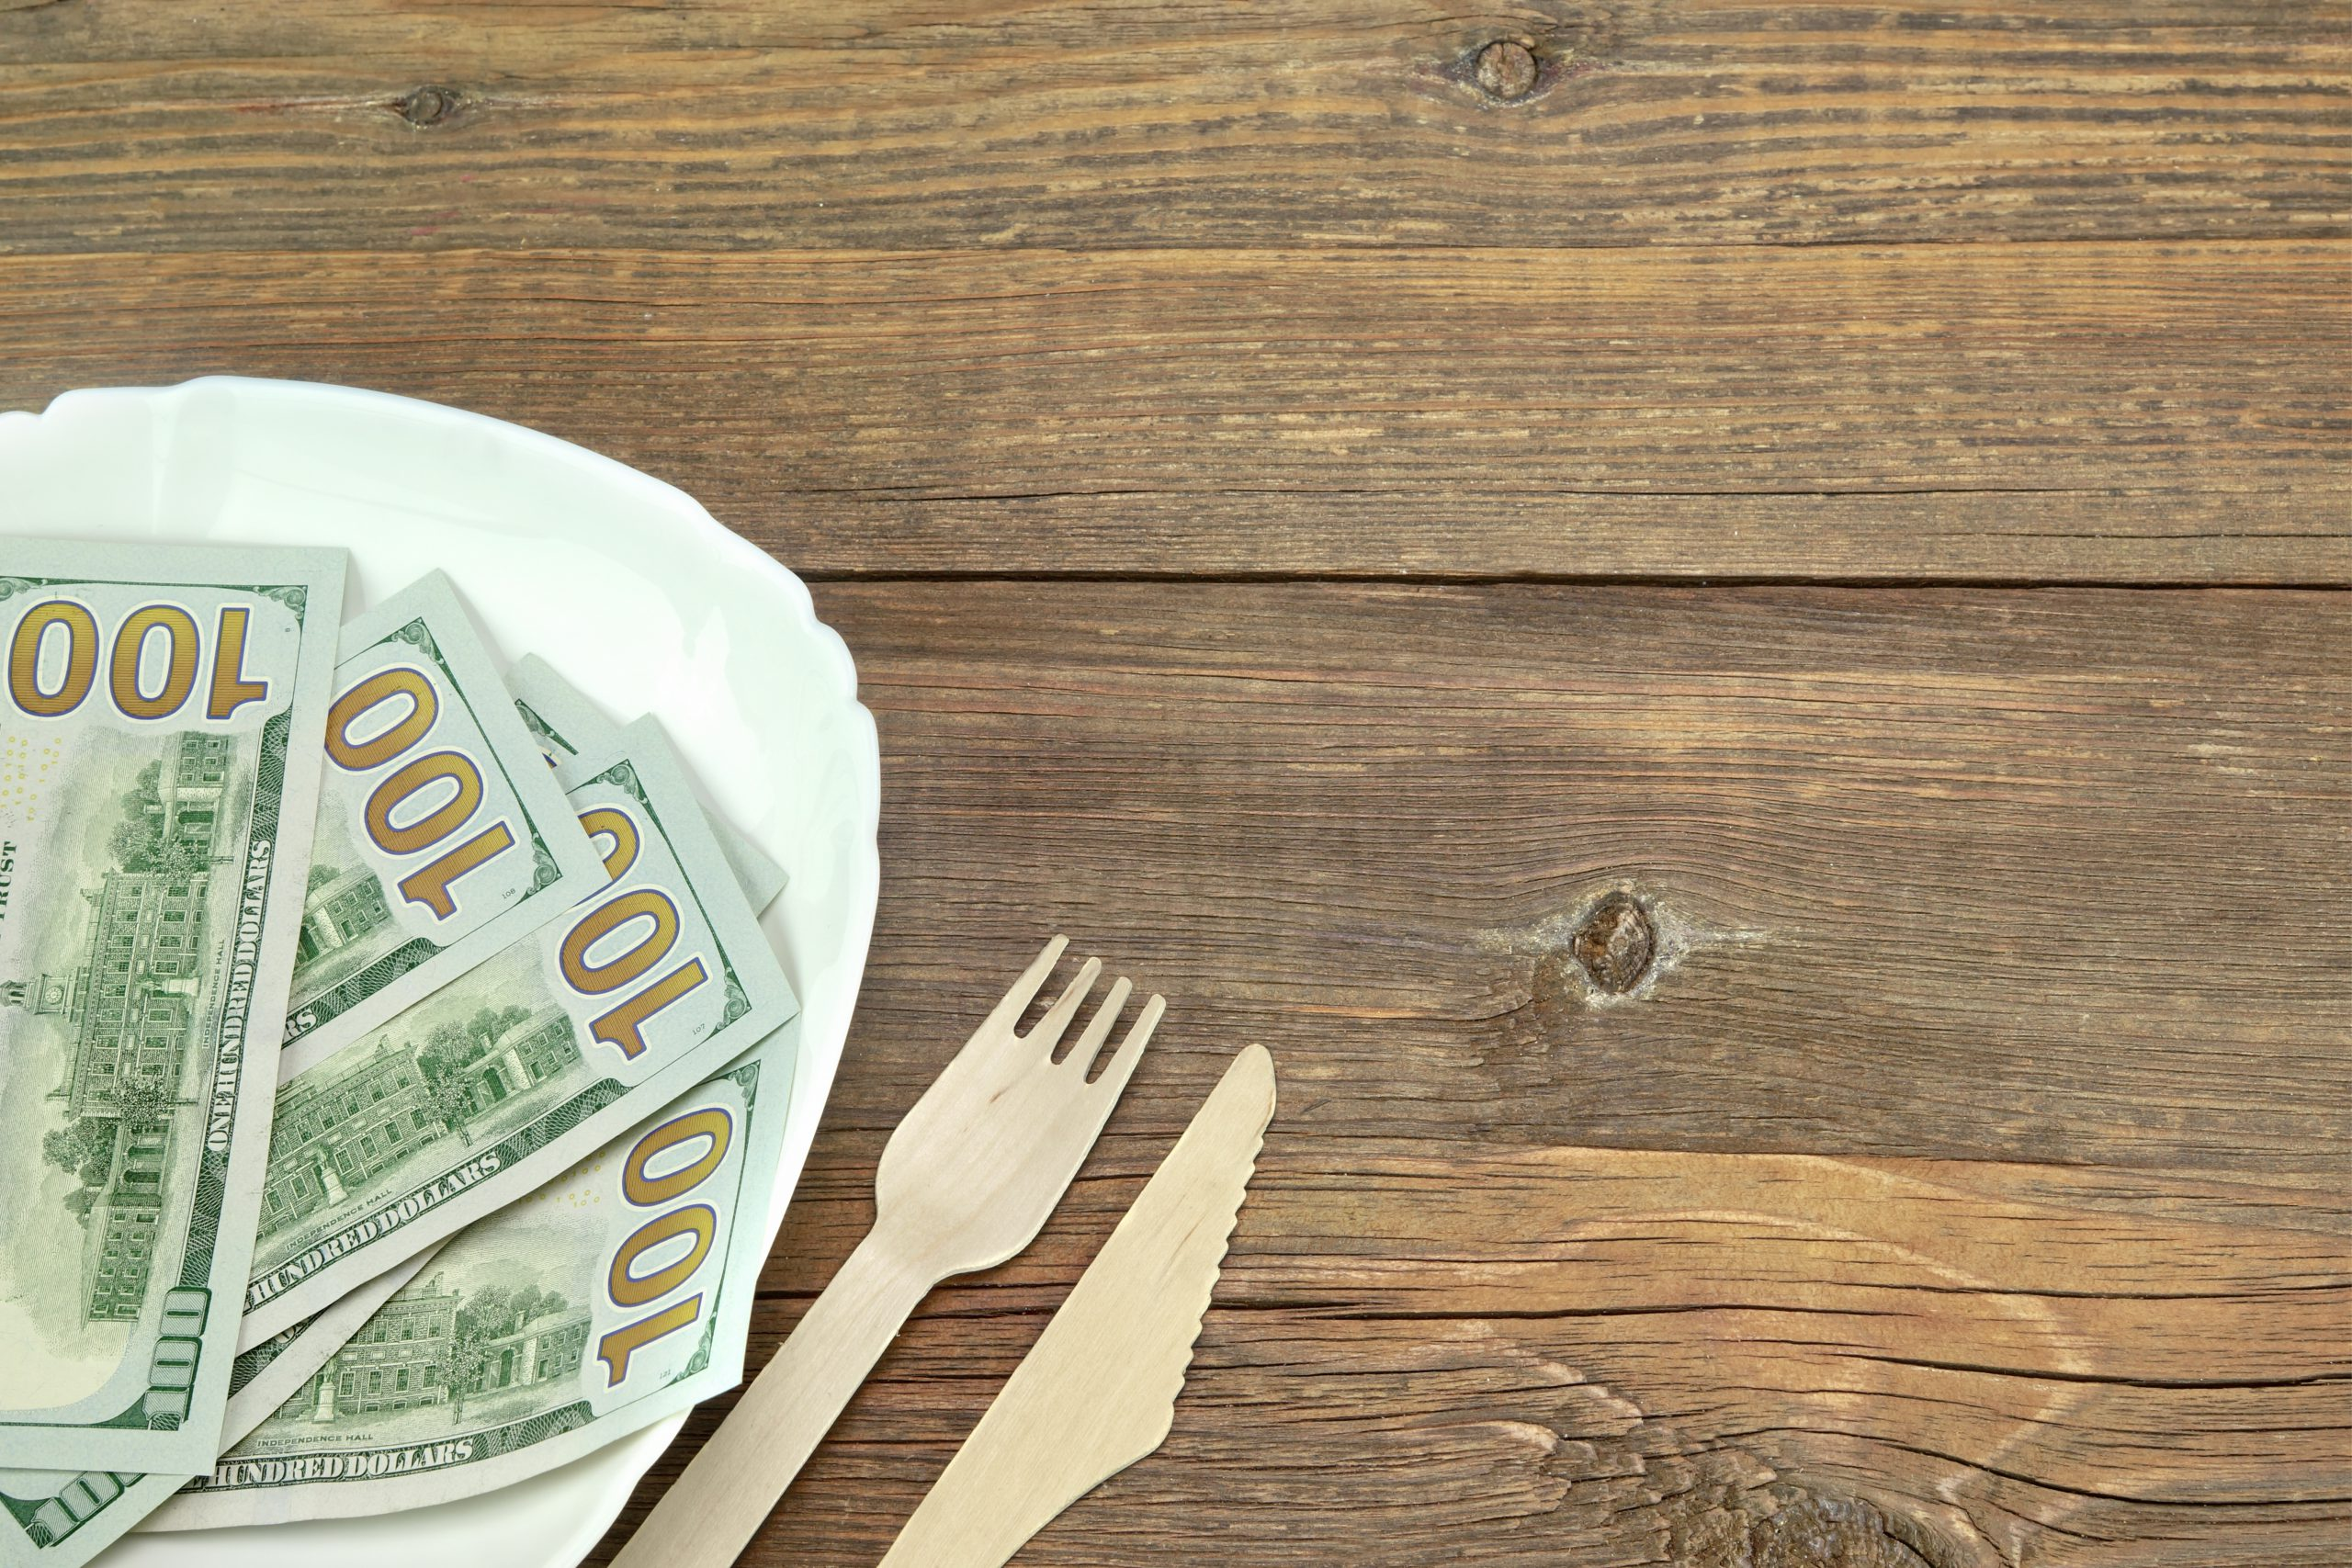 Hundred-dollar bills laid on plate with fork and knife next to it